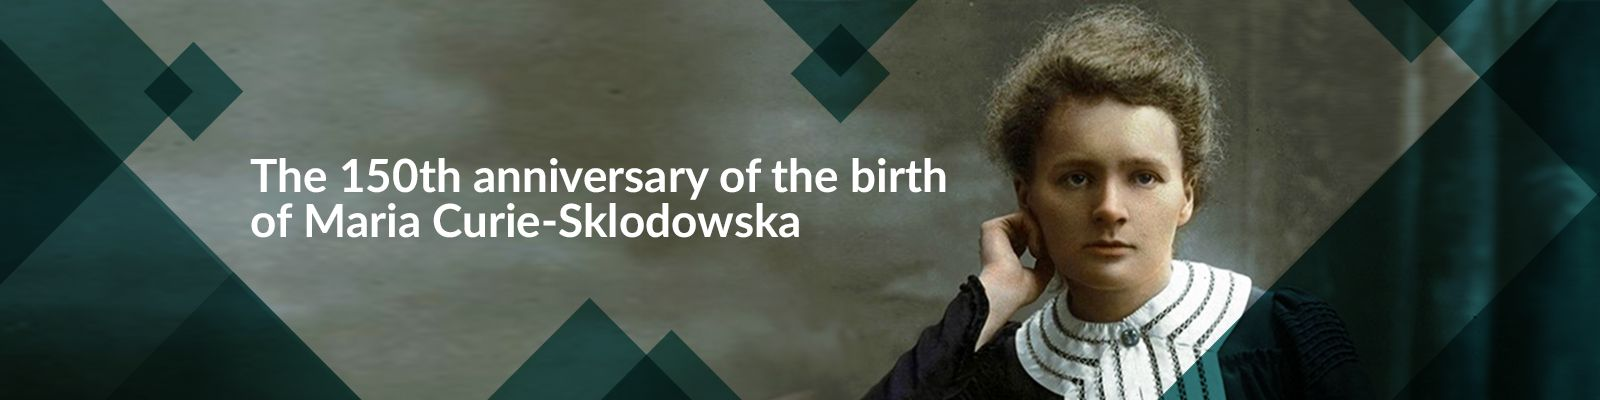 The 150th anniversary of the birth of Maria Curie-Sklodowska